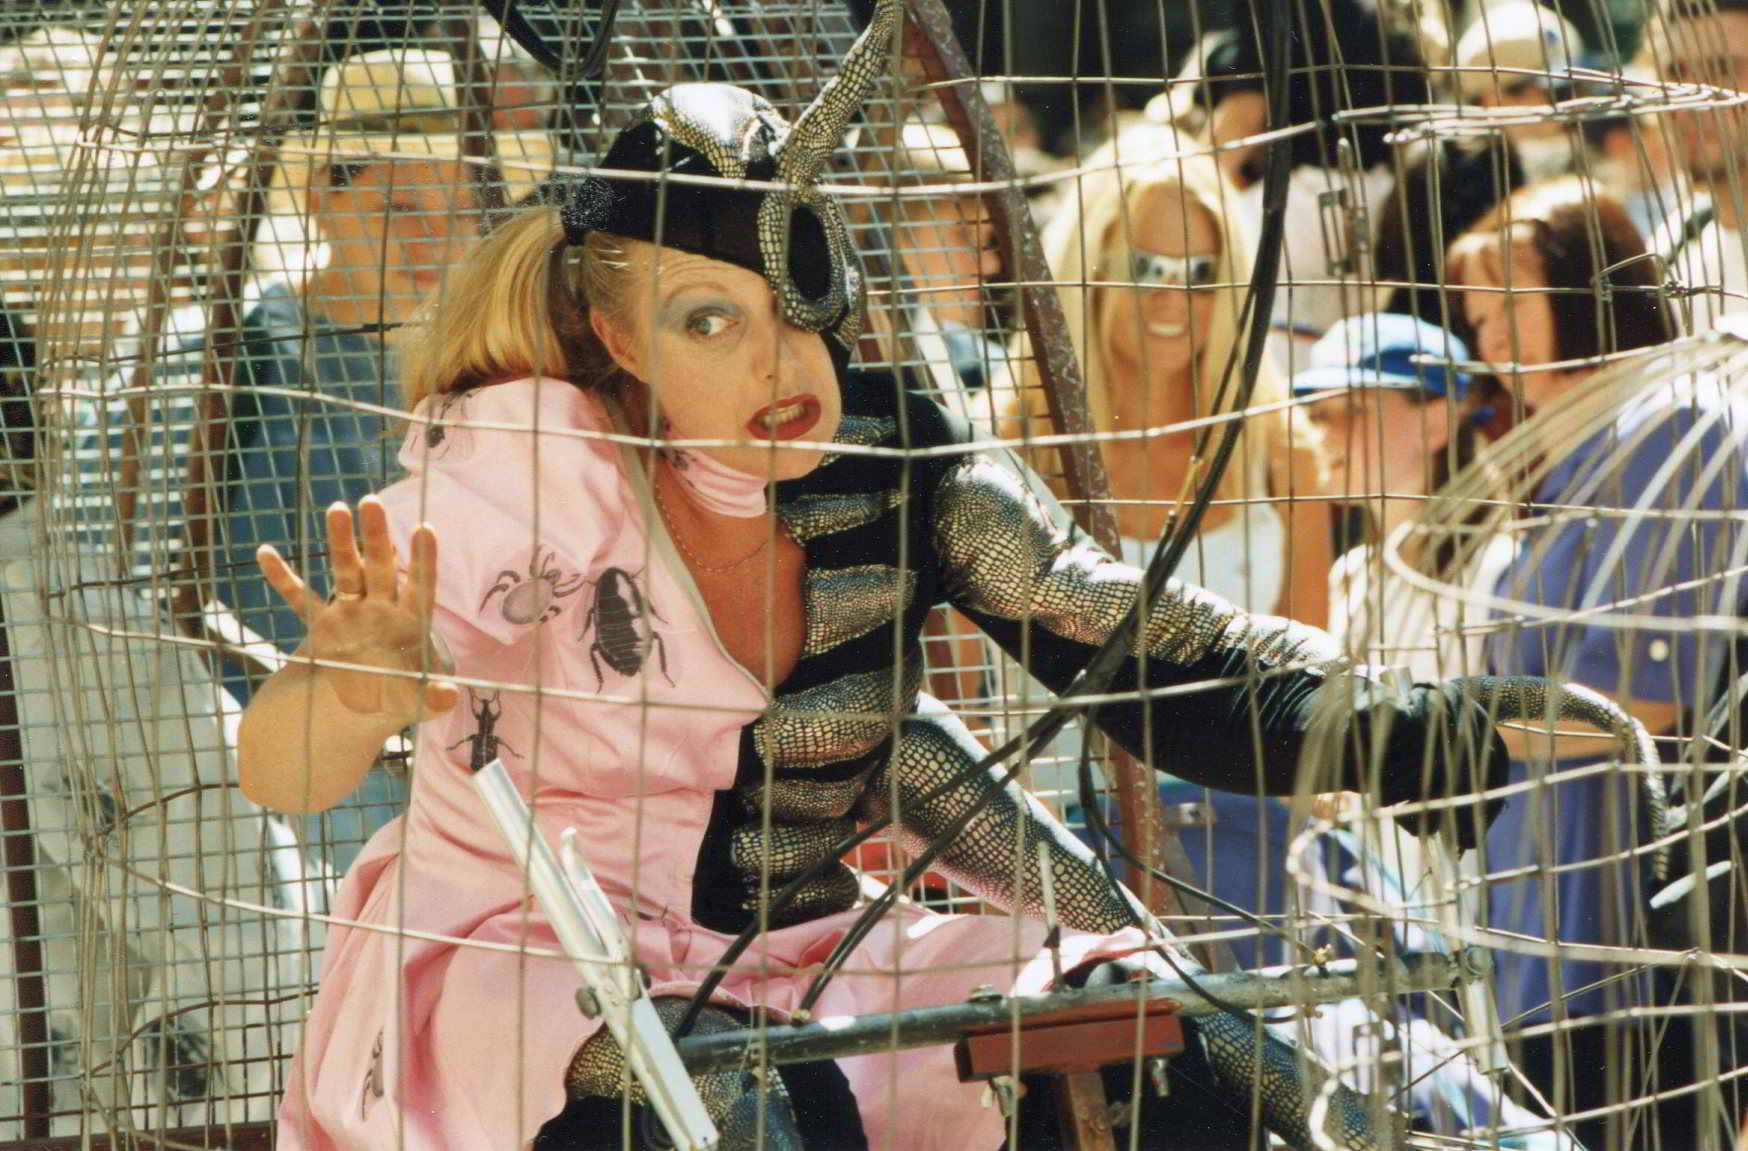 Road Roach strret theatre image a close up actor in dual costume pink dress and black and silver insect, inside a cage